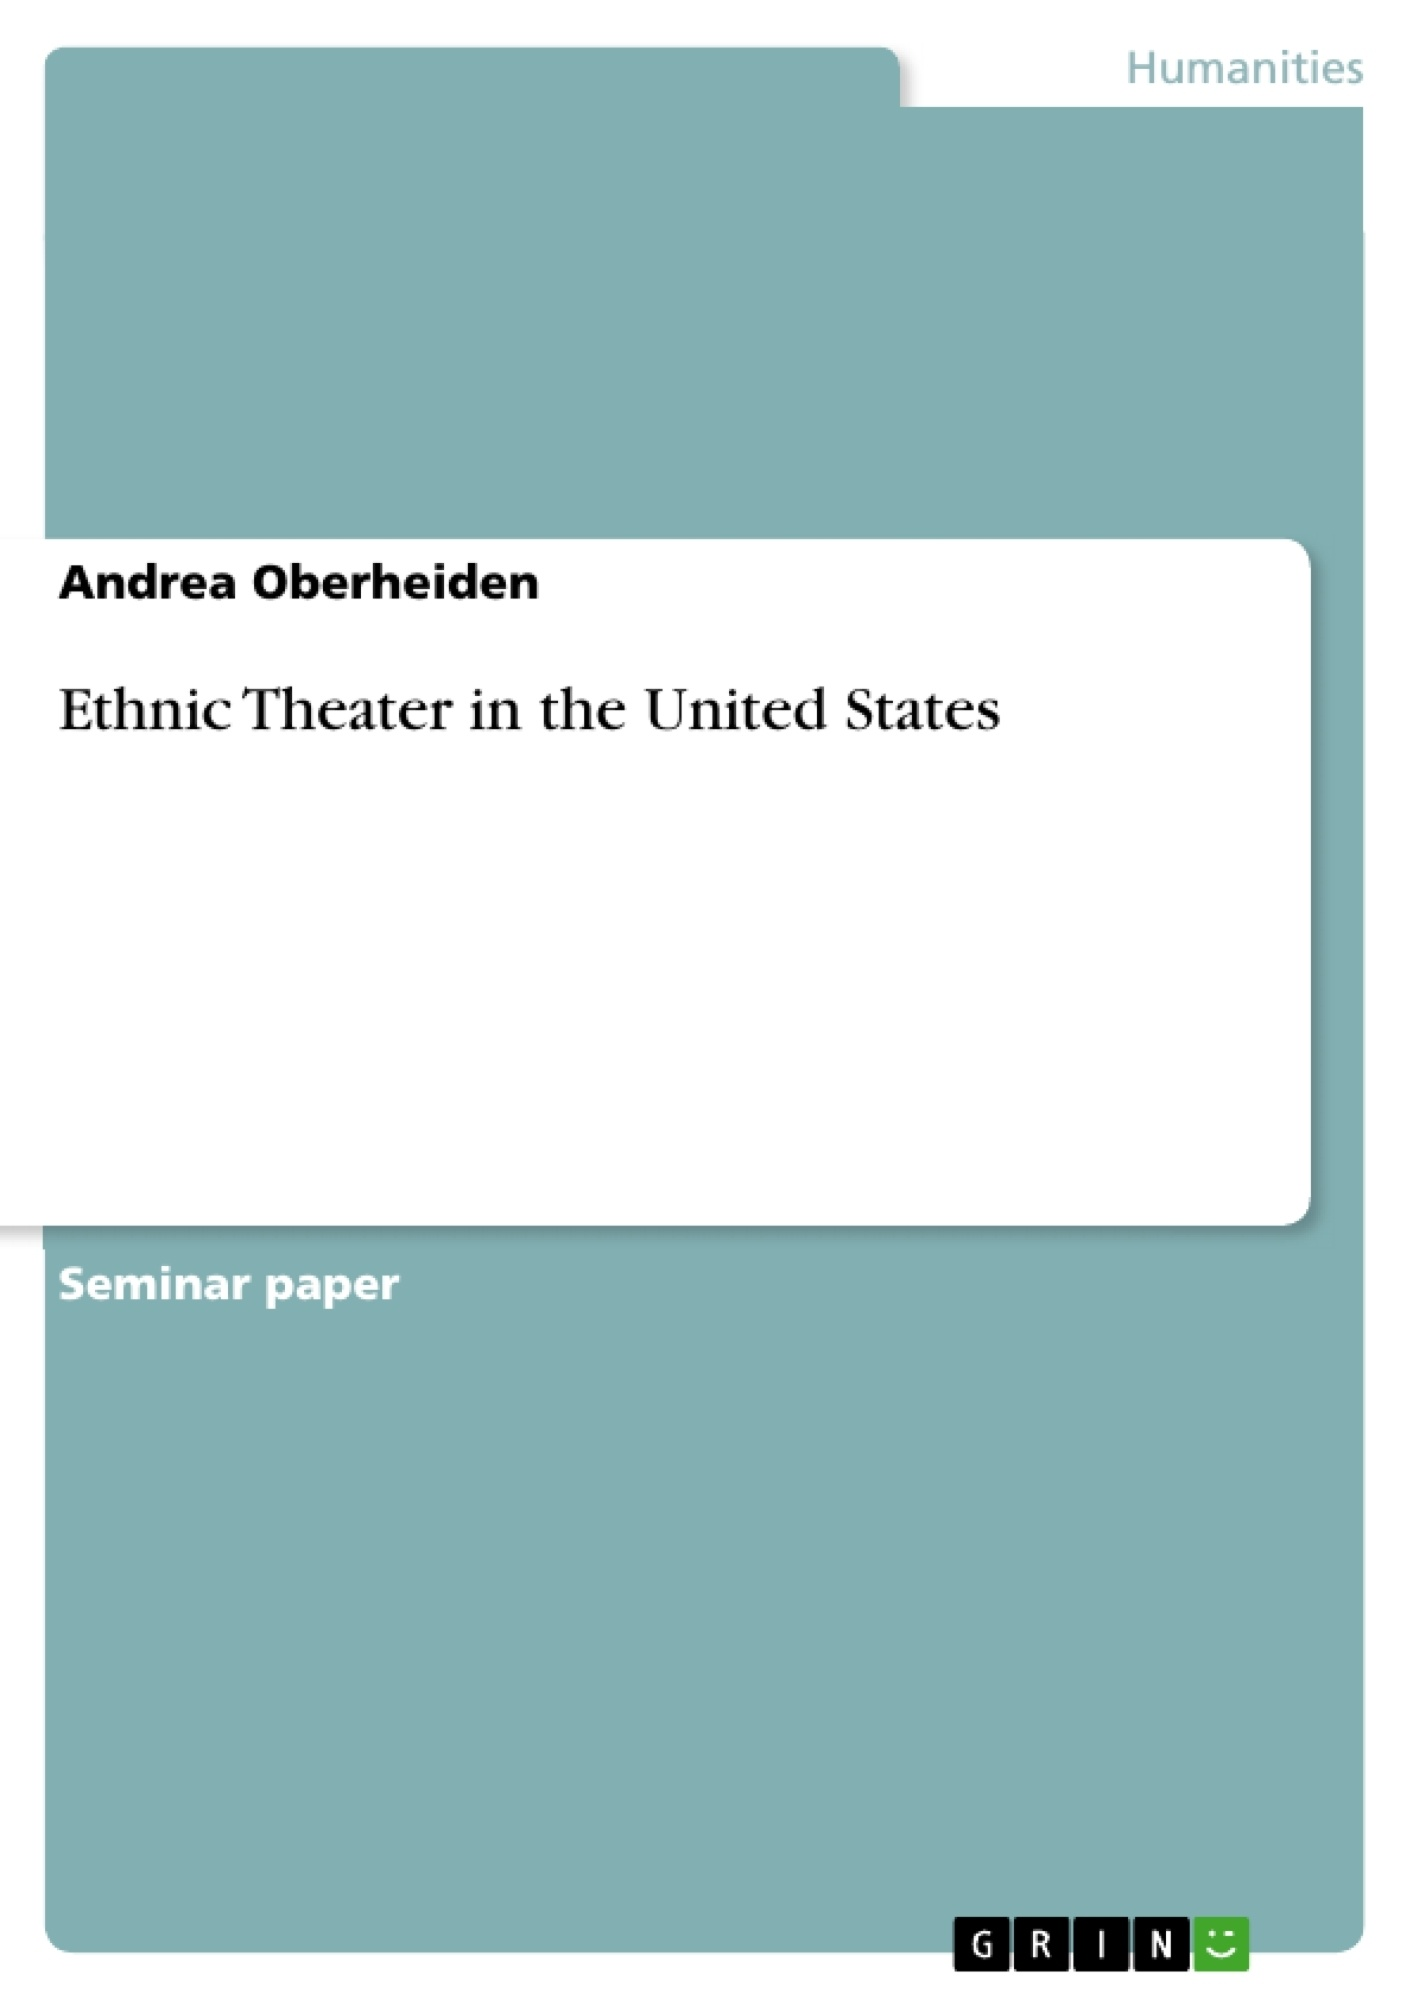 Title: Ethnic Theater in the United States